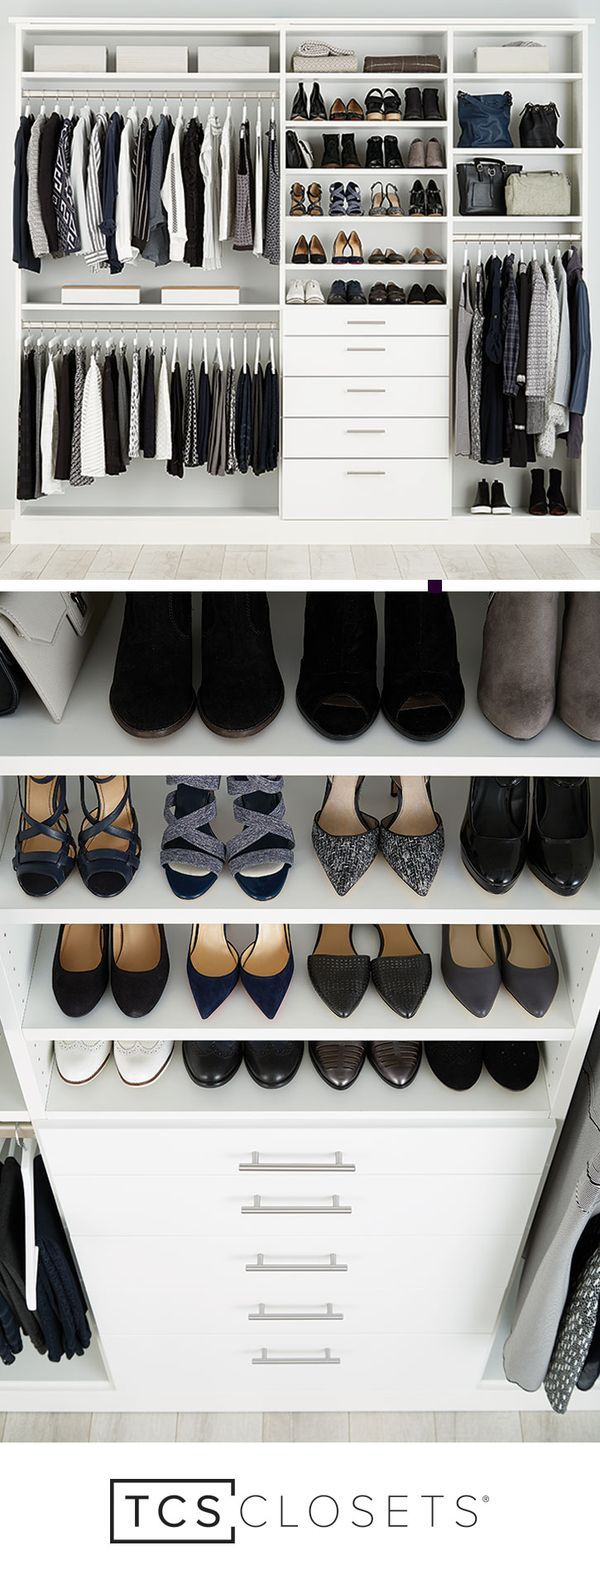 EVERYTHING YOU'VE EVER DREAMED OF IN A CLOSET | With so many closet options, you can customize to your heart's content.